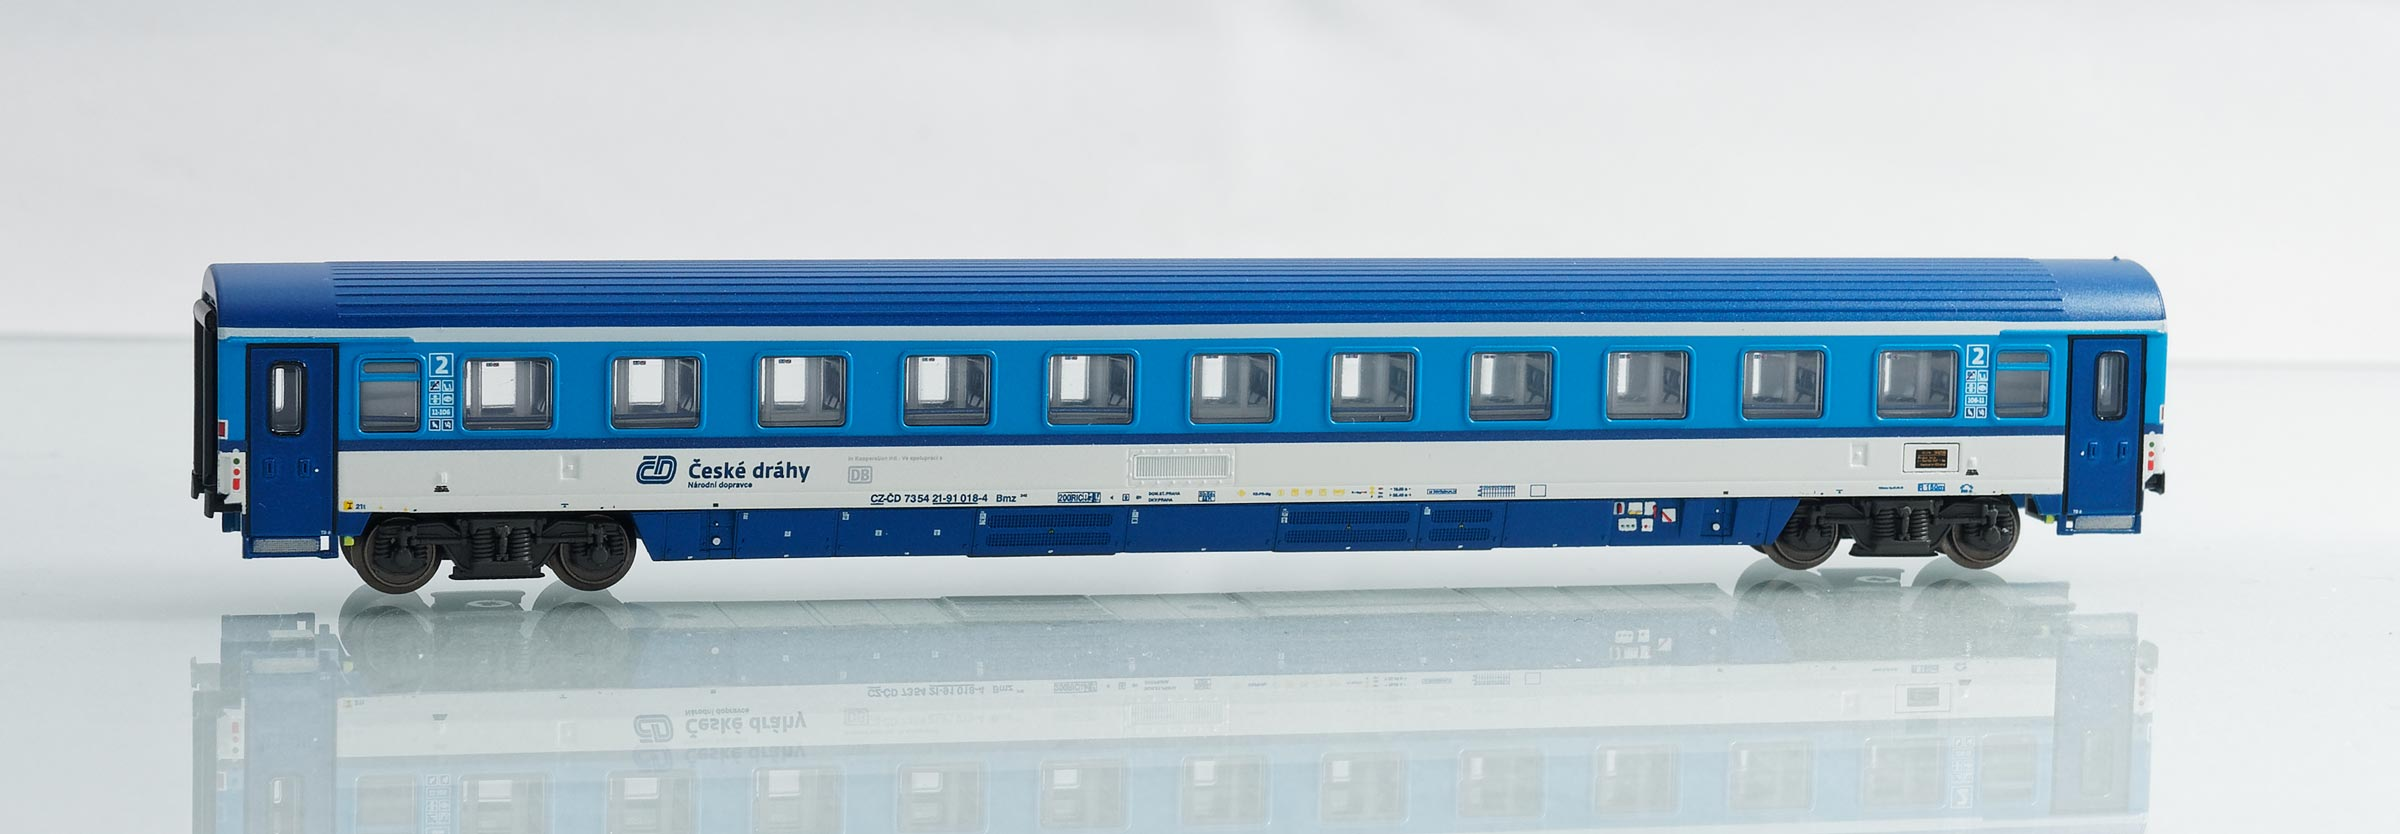 195430: EuroCity compartment car 2. class, type Bmz 245 of the Czech Railways CD